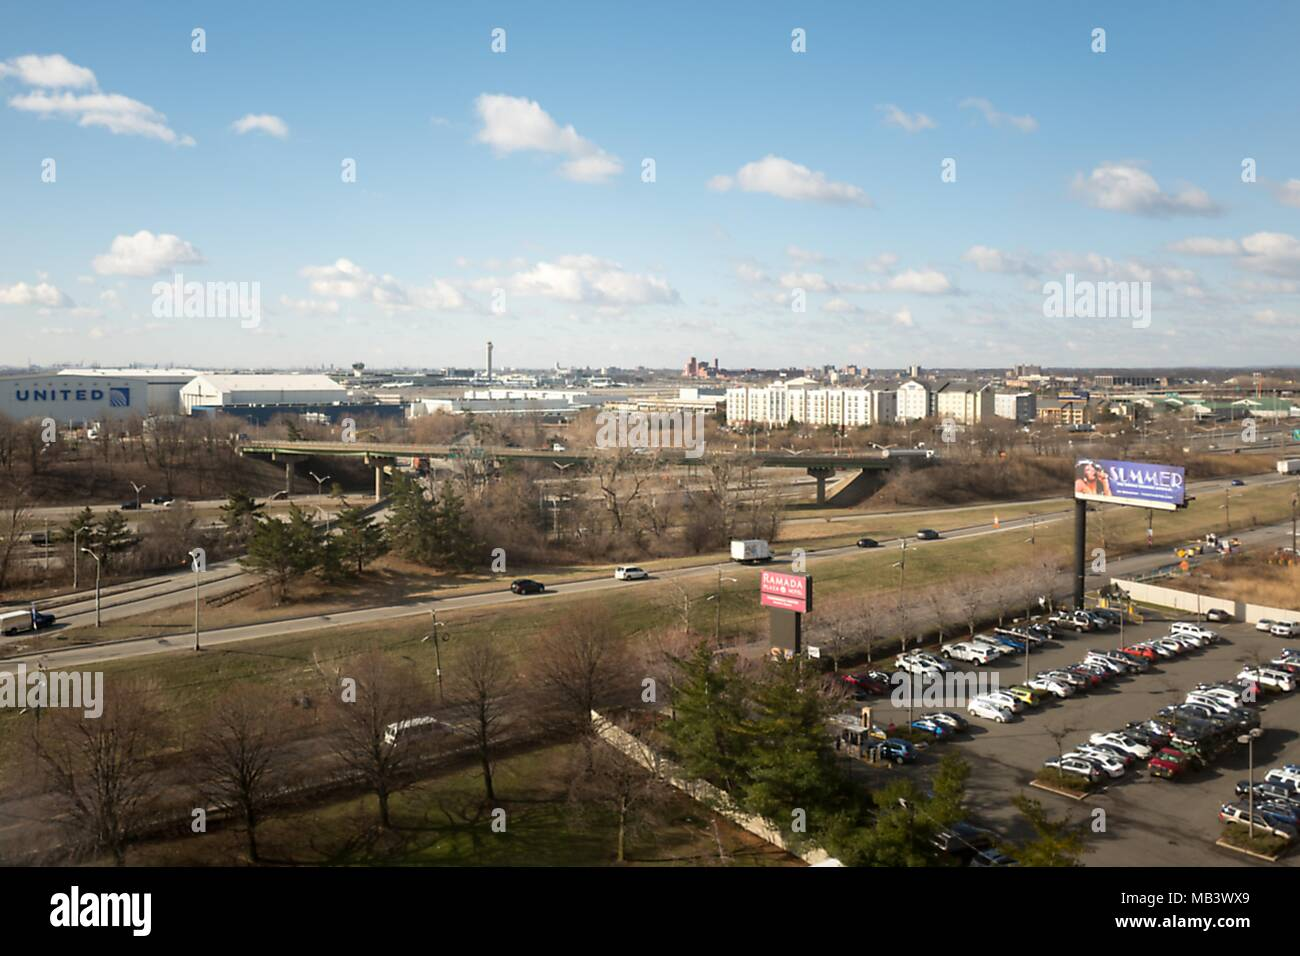 Ewr stock photos ewr stock images alamy for Build on your lot new jersey